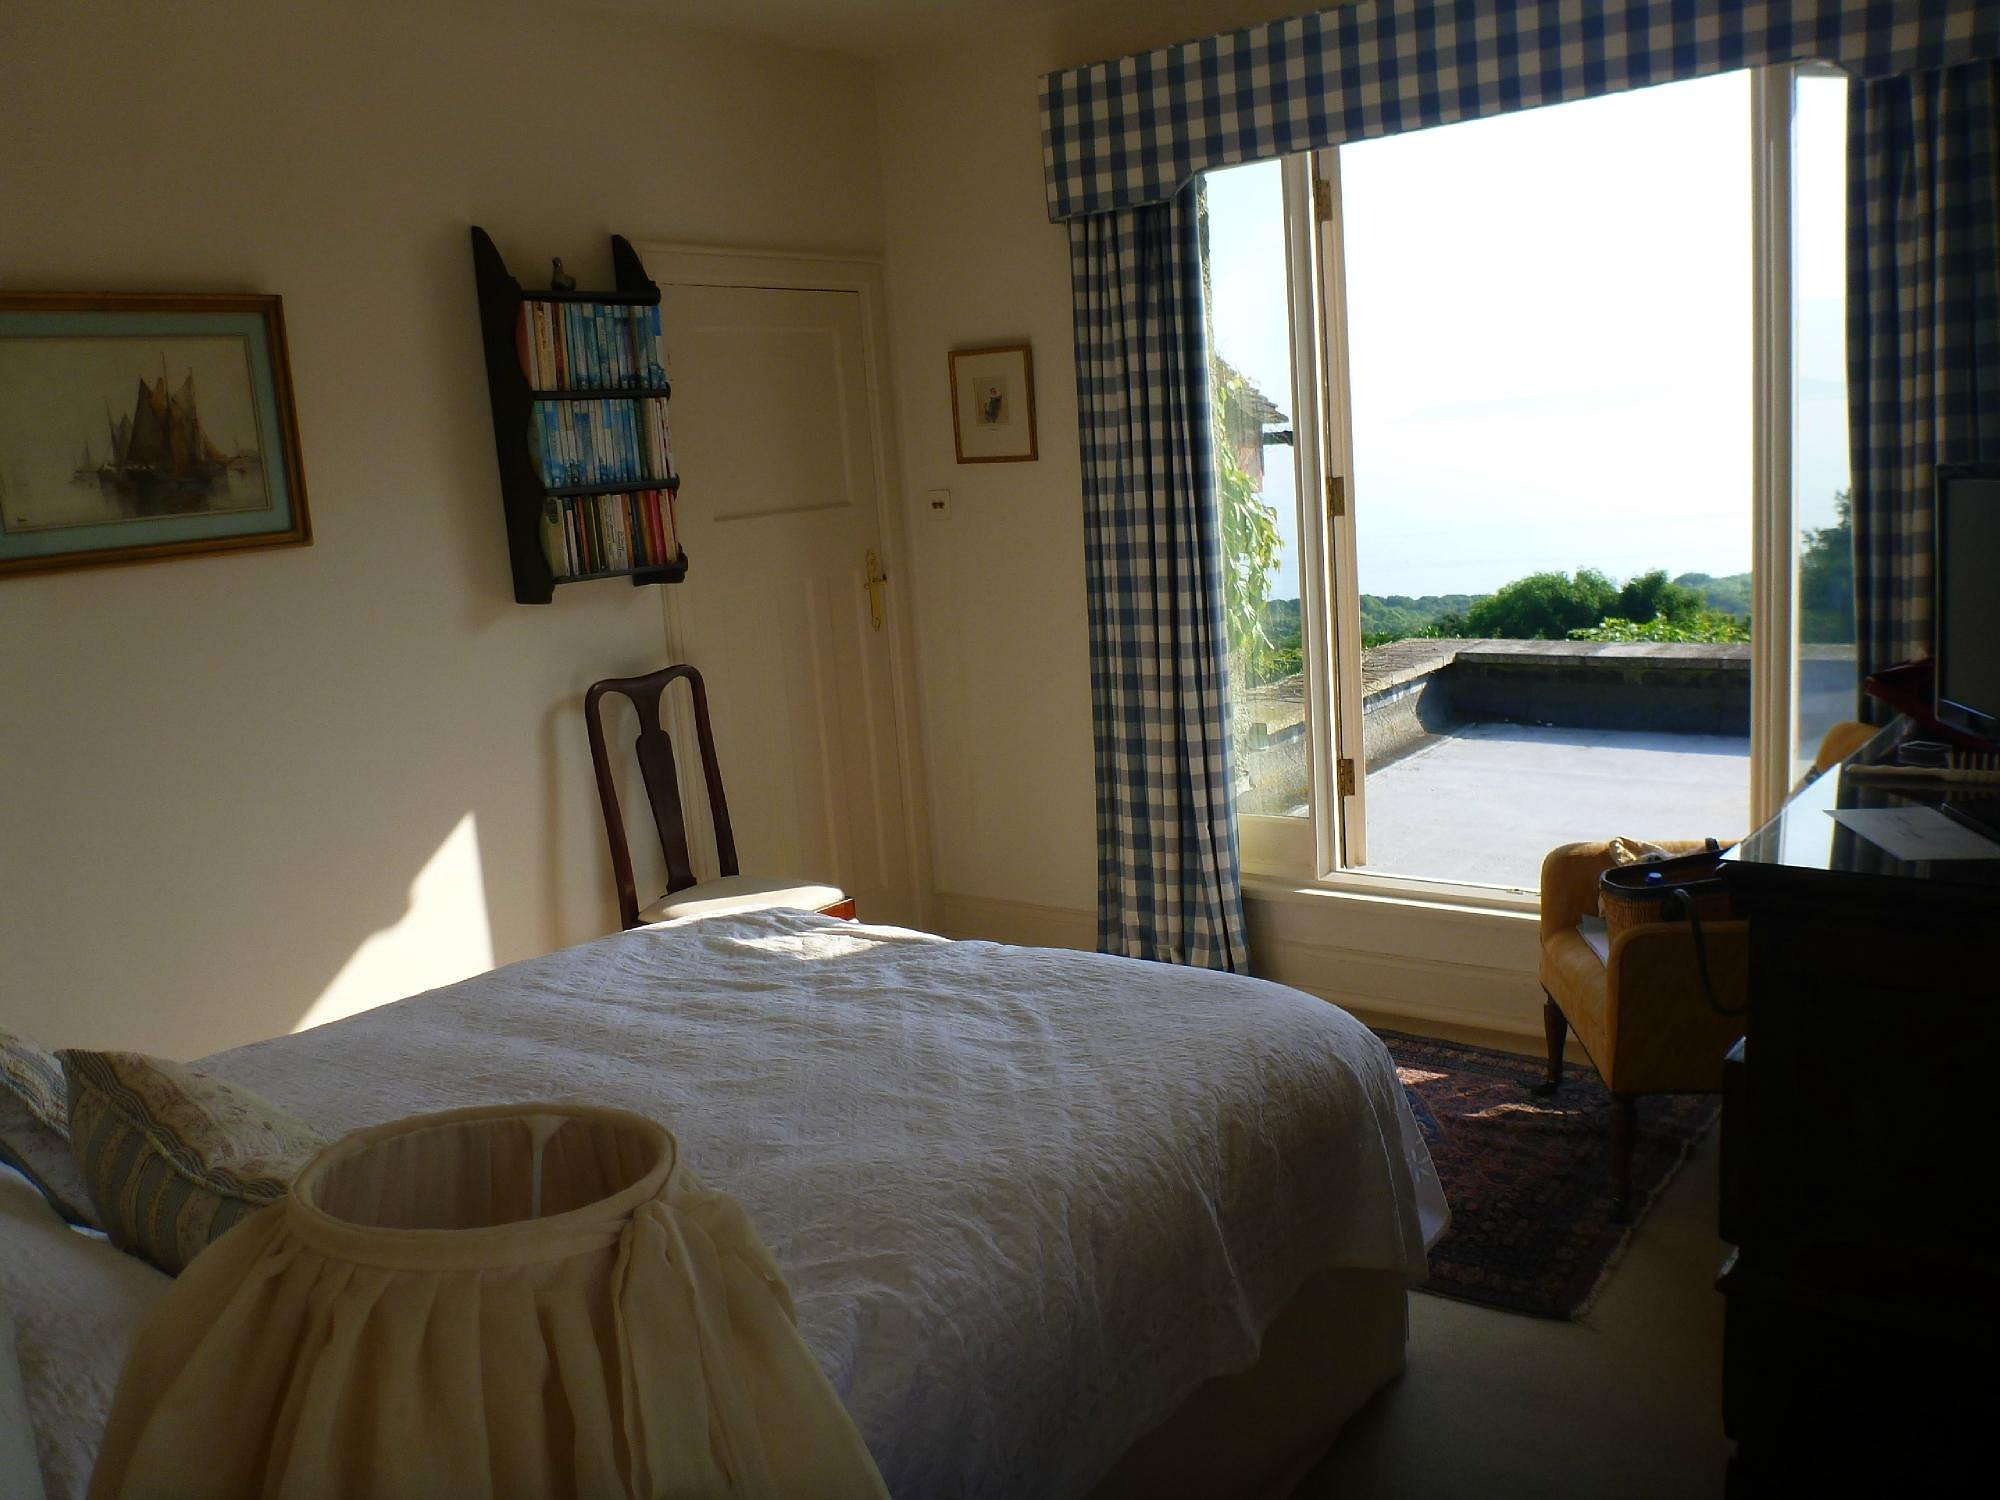 Exceptional Bed and Breakfast by the sea in Dorset.